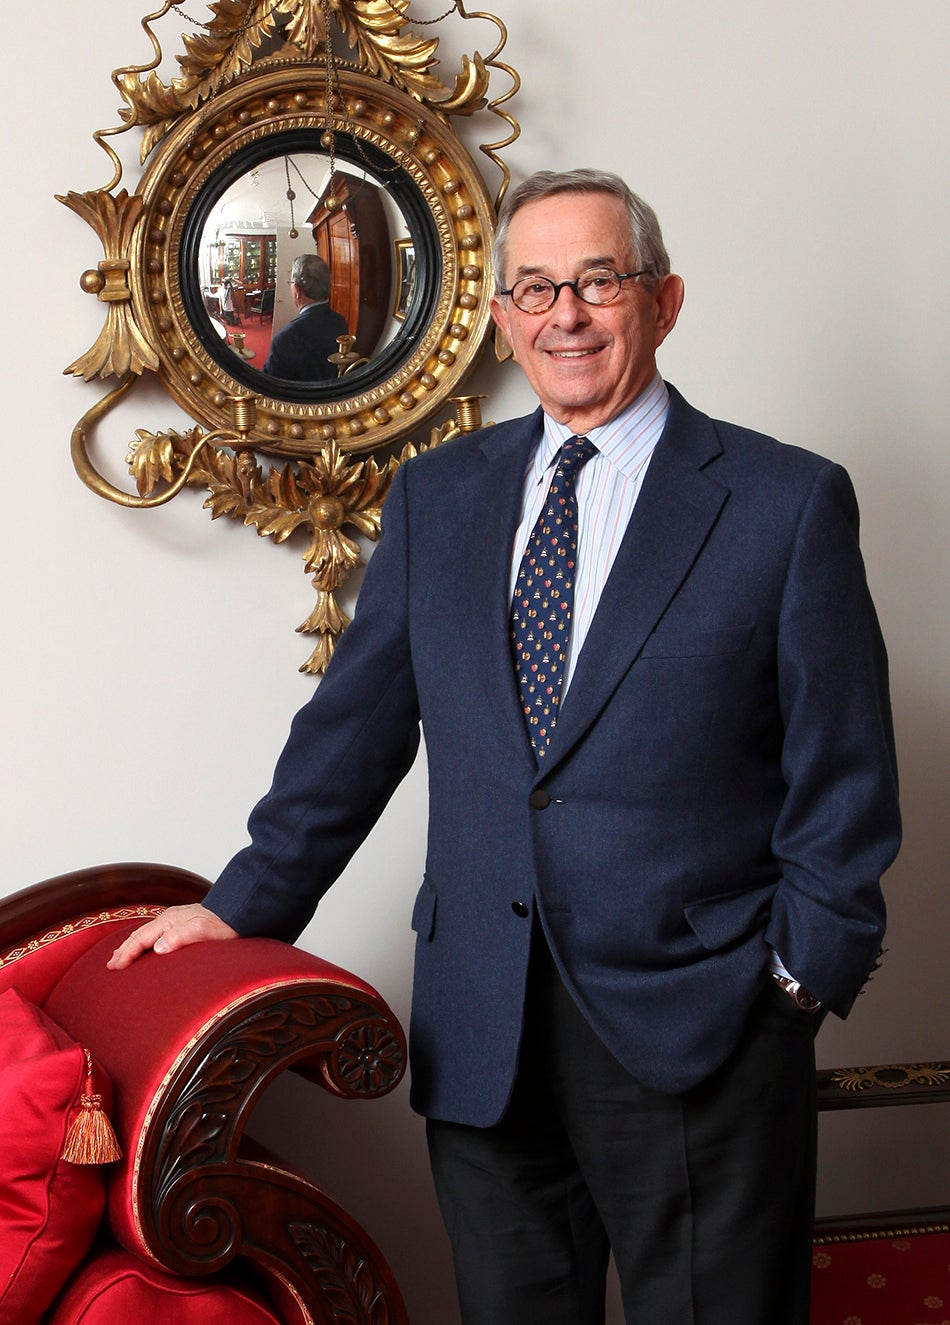 In his office, Stuart stands in front of one of a pair of girandole mirrors, made in Philadephia in 1810, with his hand resting on a circa 1826 sofa attributed to Isaac Vose of Boston.